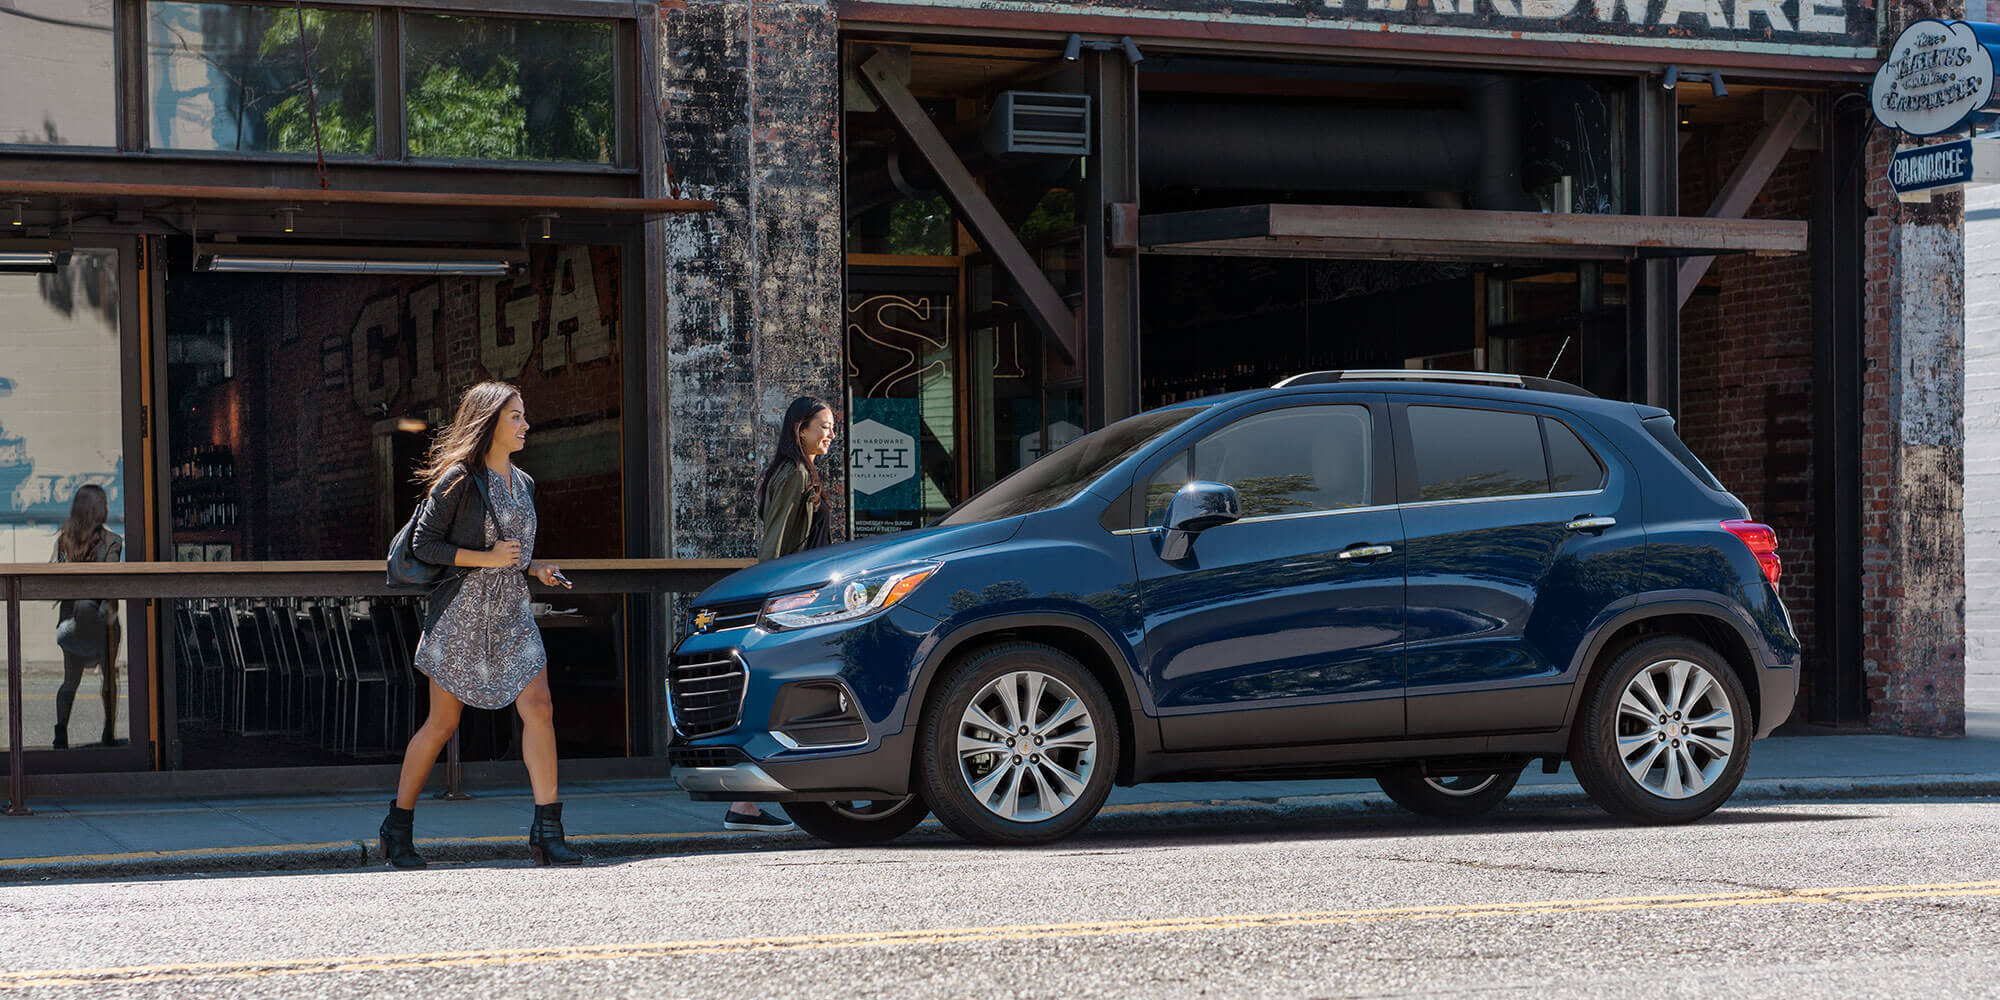 2020 Chevrolet Trax Lease near Downers Grove, IL